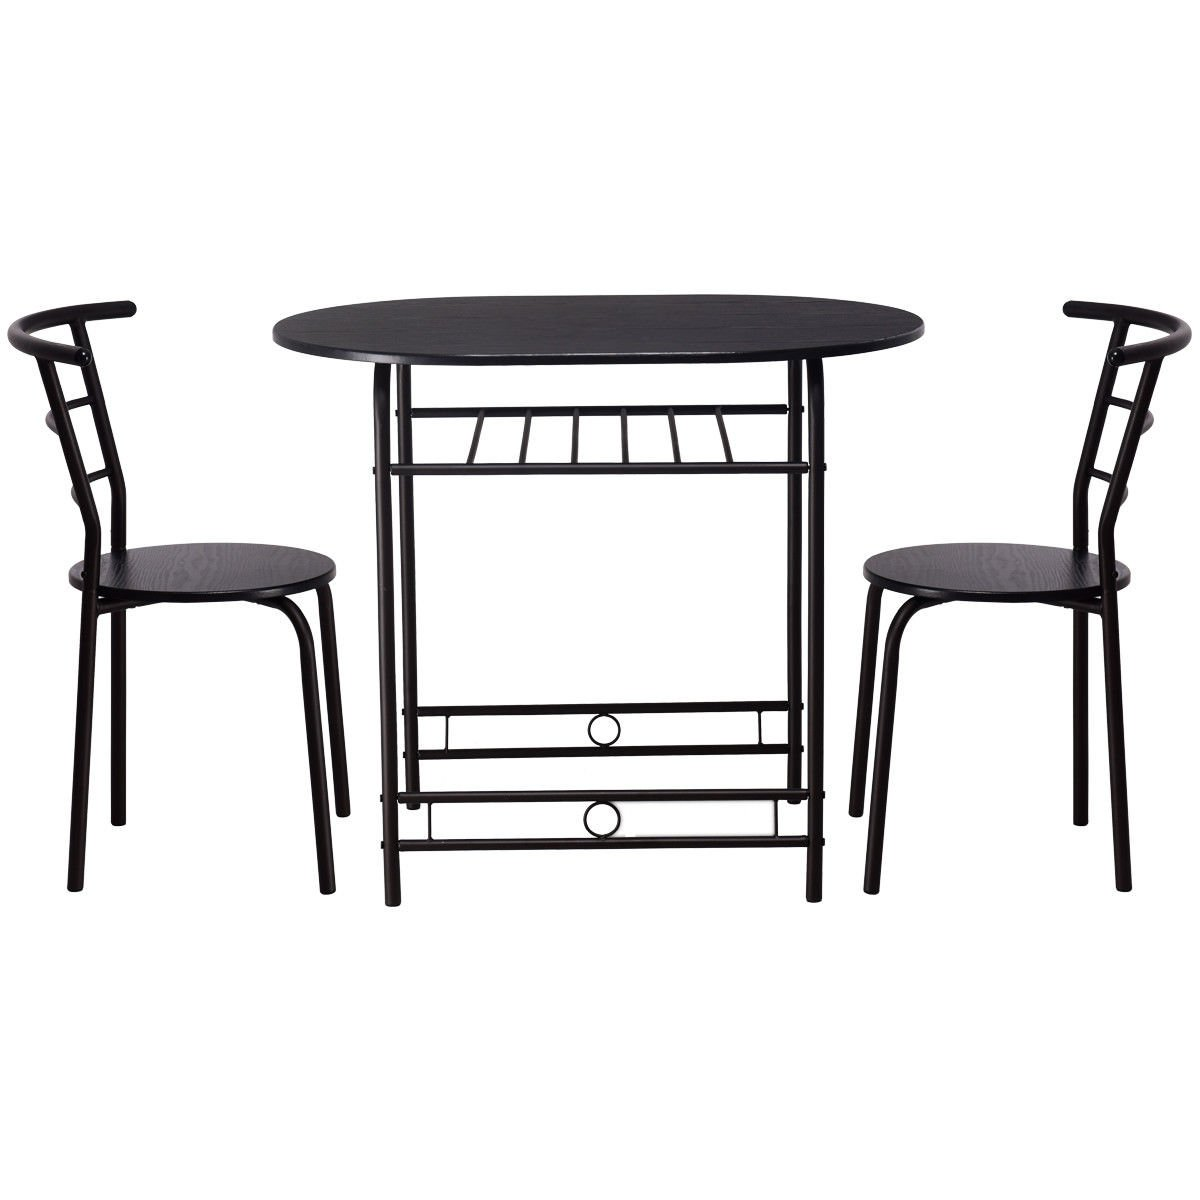 Giantex 3 PCS Dining Table Set w/1 Table and 2 Chairs Home Restaurant Breakfast Bistro Pub Kitchen Dining Room Furniture (Black) by Giantex (Image #6)